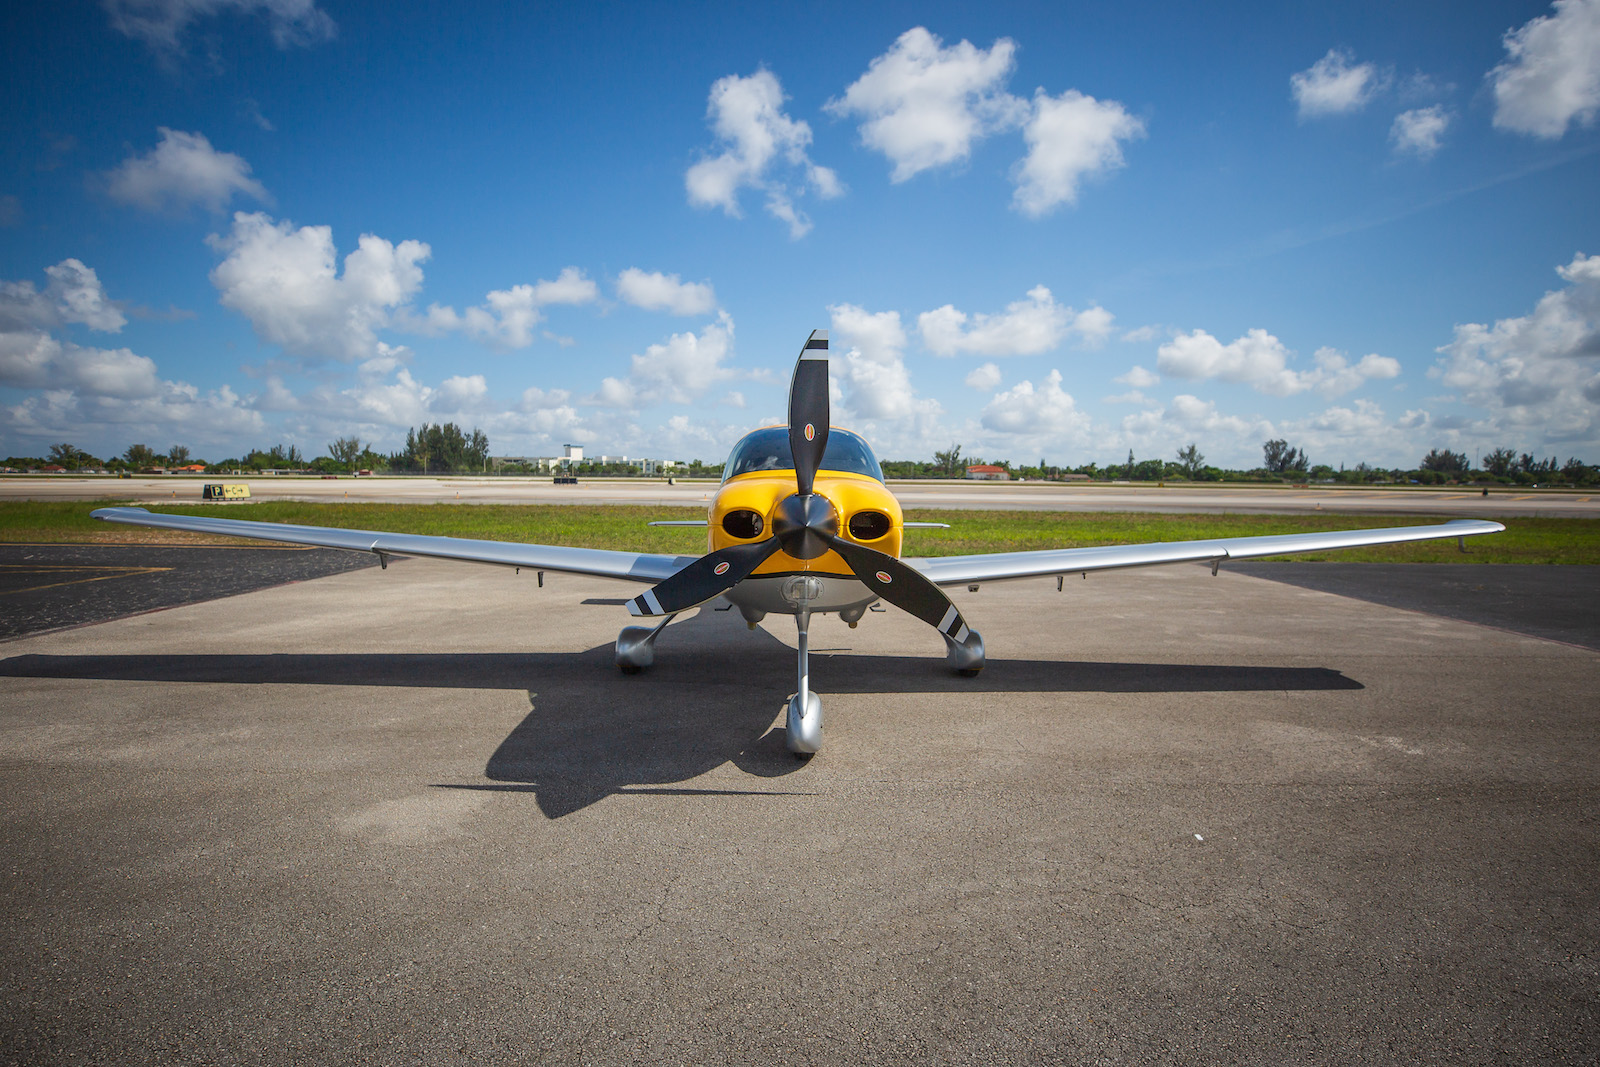 Aircraft Listing - Cirrus SR22 G5 GTS listed for sale